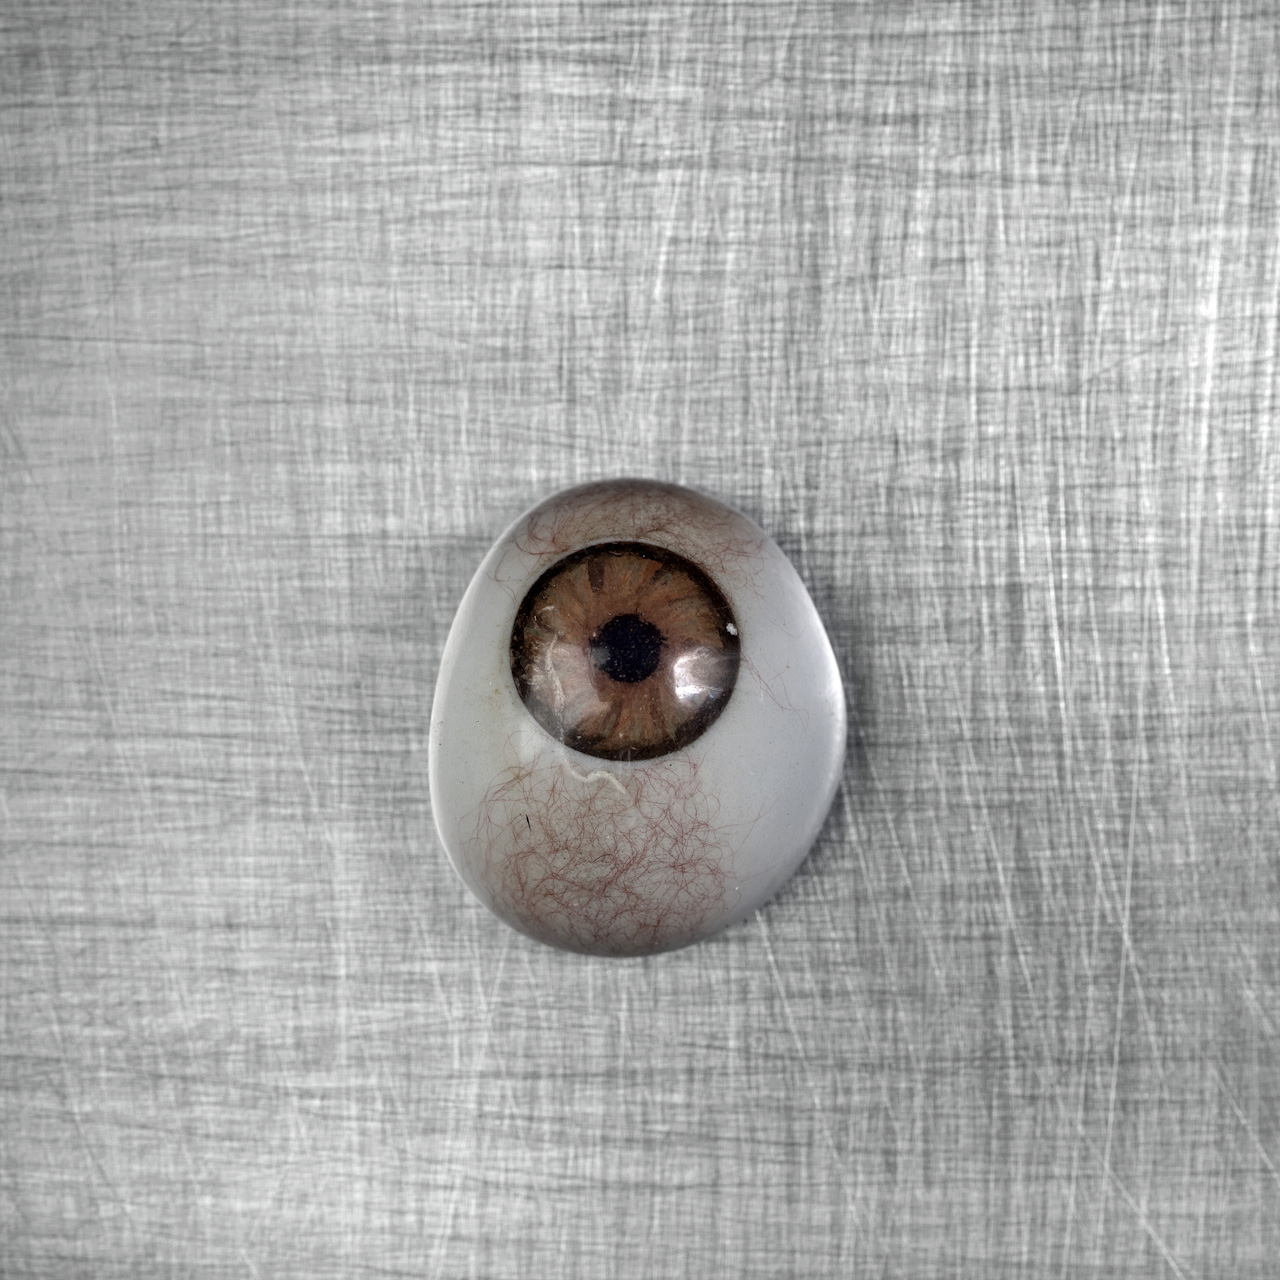 Glass eye, from Quest for Identity. Photo: Ziyah Gafić